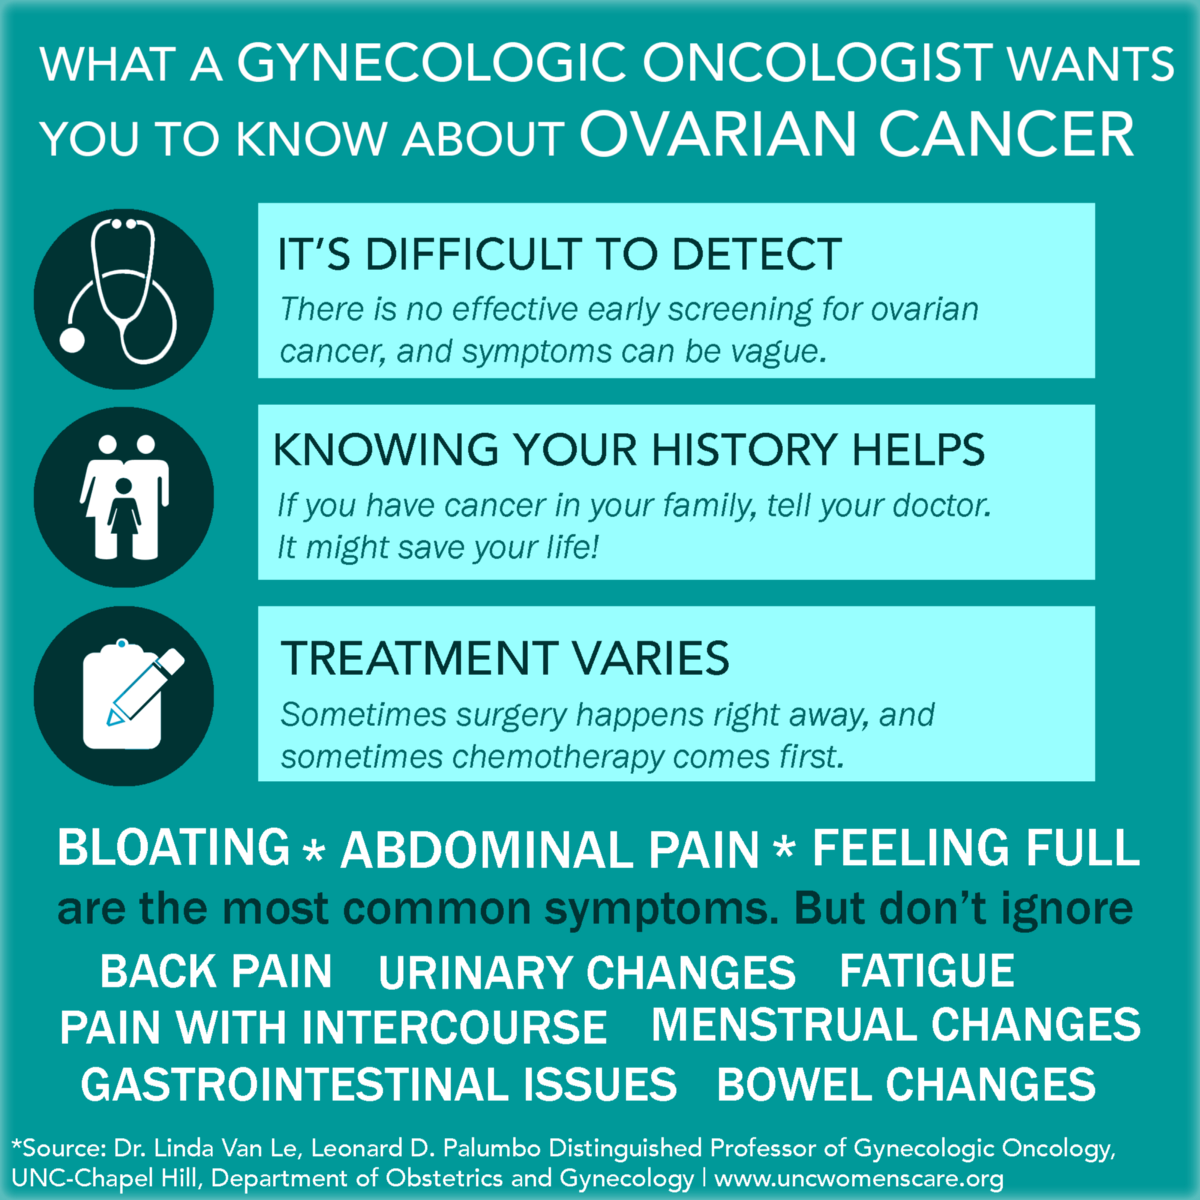 What A Gynecologic Oncologist Wants You To Know About Ovarian Cancer By Unc Women S Care Medium